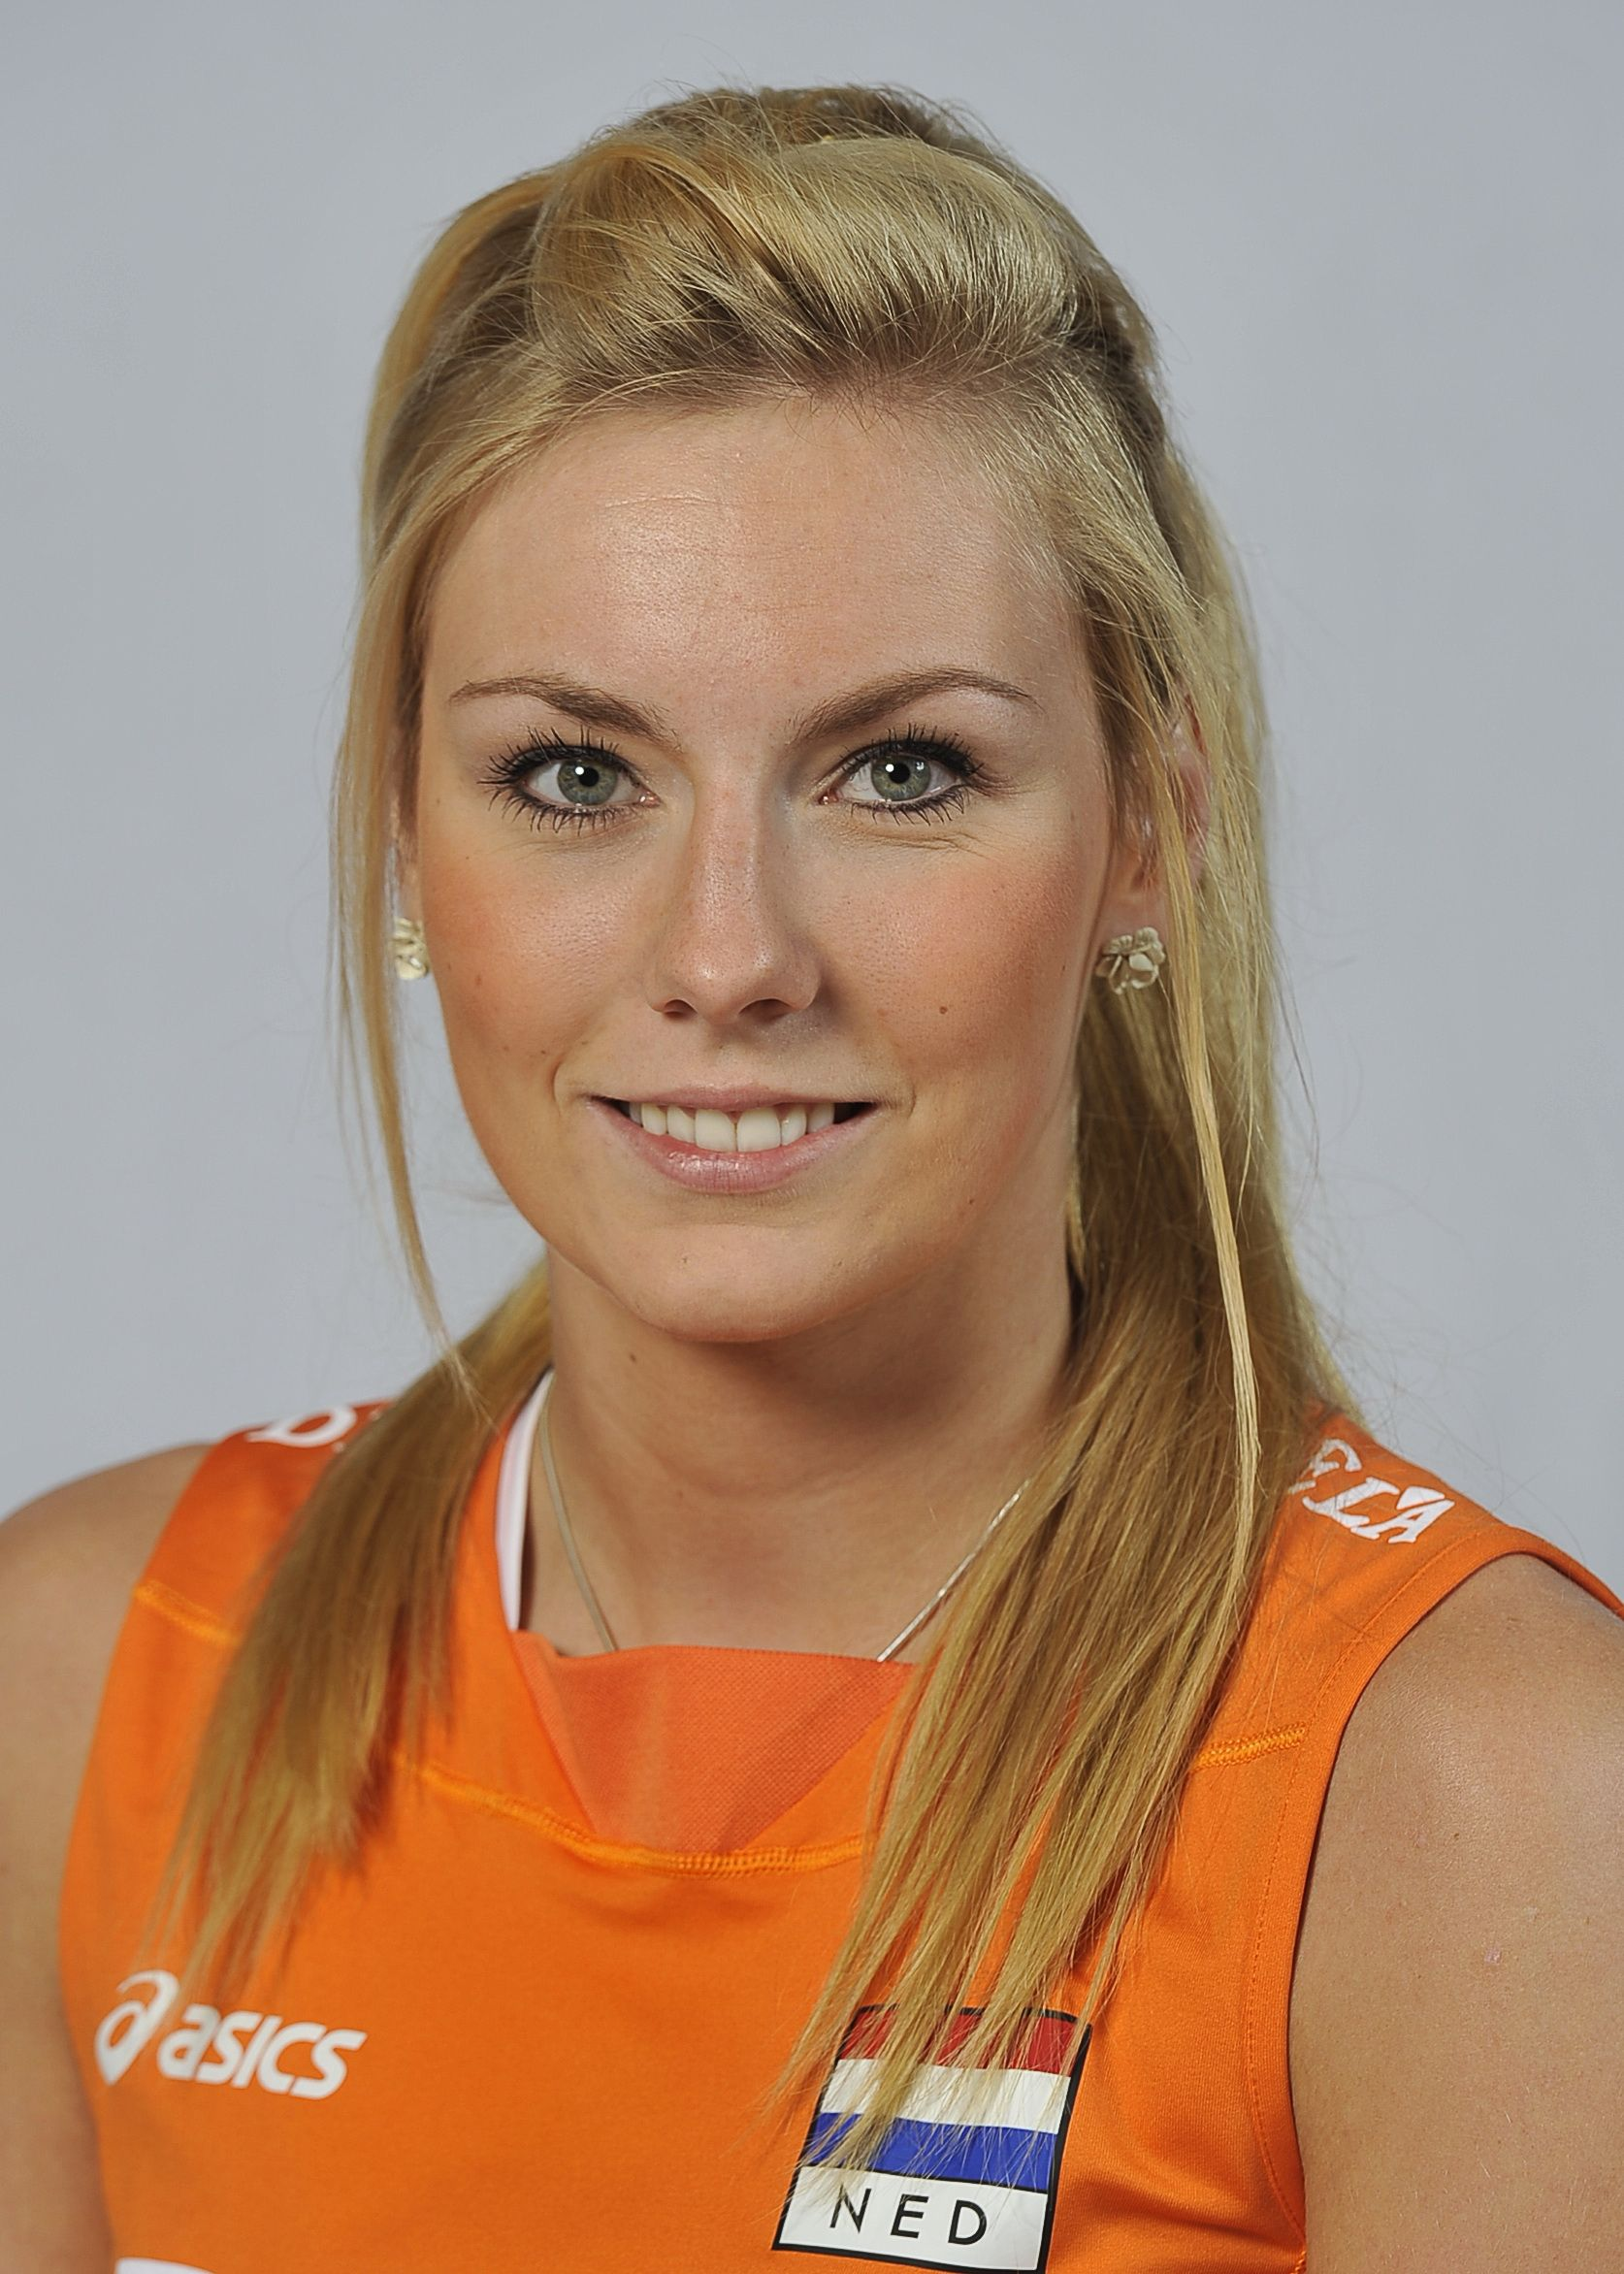 Laura Dijkema Is A Dutch Female Volleyball Player Of The Dutch National Female Team Women Volleyball Dutch Women Female Volleyball Players